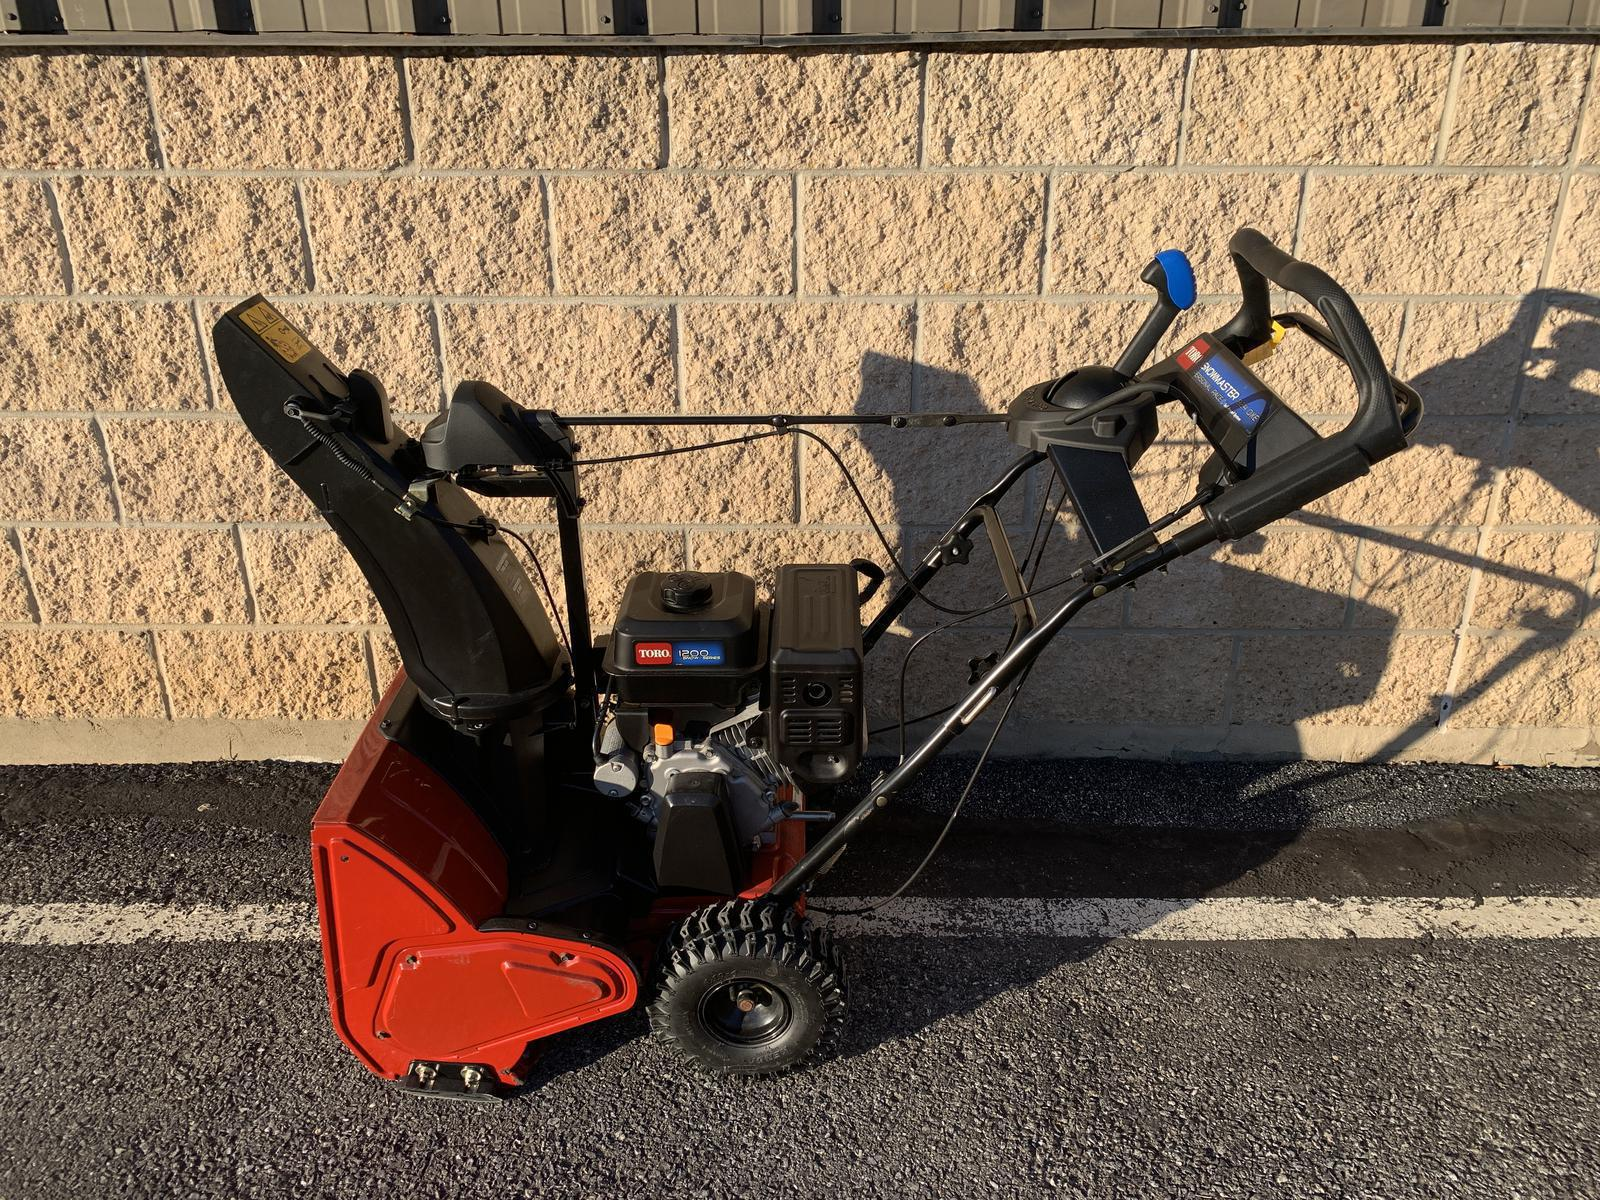 Toro Snowmaster 824 Qxe 36003 For Sale In Williamsport Pa Thompson S Outdoor Power Equipment Williamsport Pa 570 322 8253